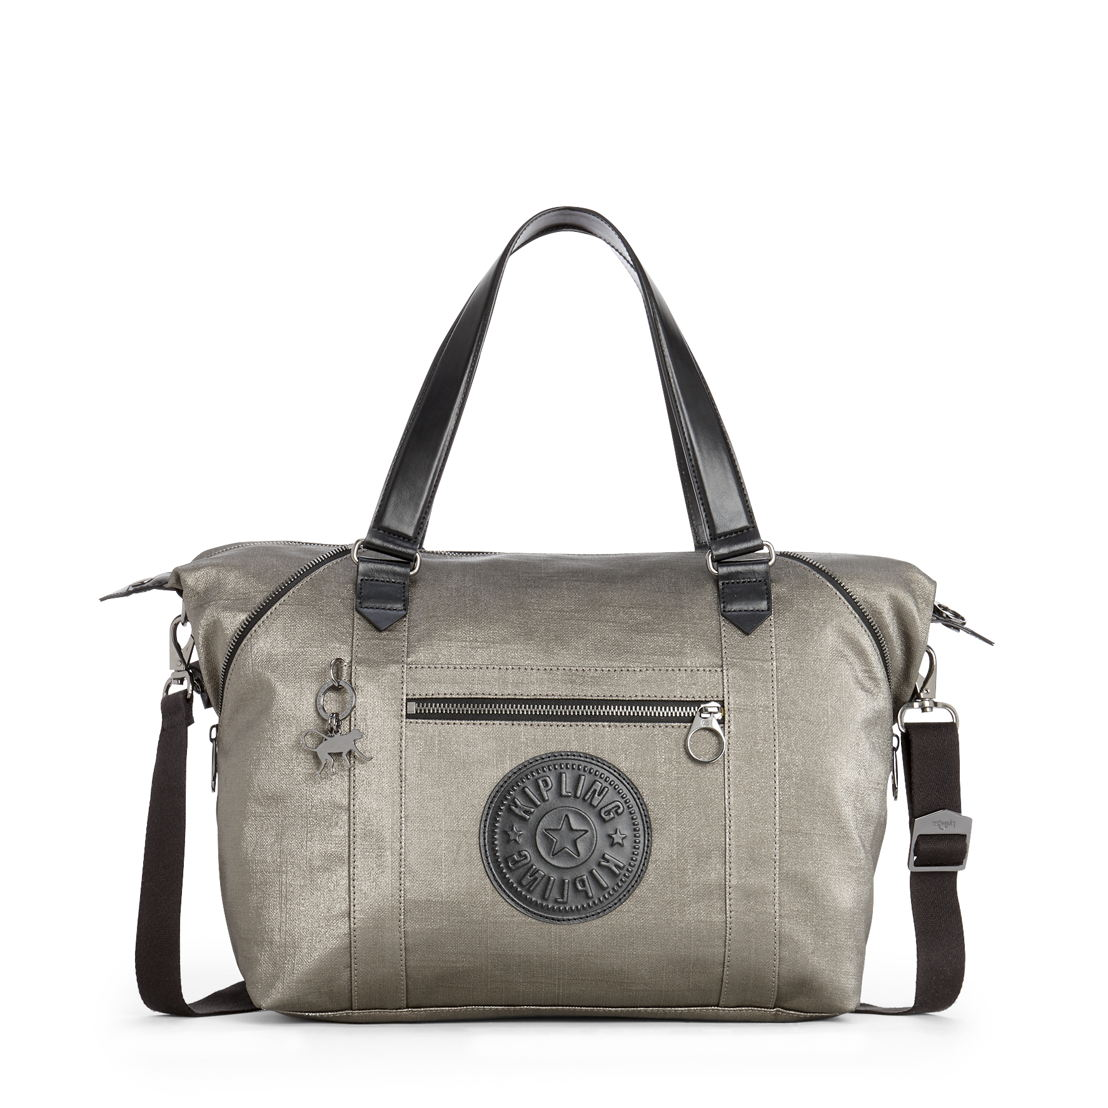 RT ORGANISED Coated Taupe - Tote with removable pouches - £214